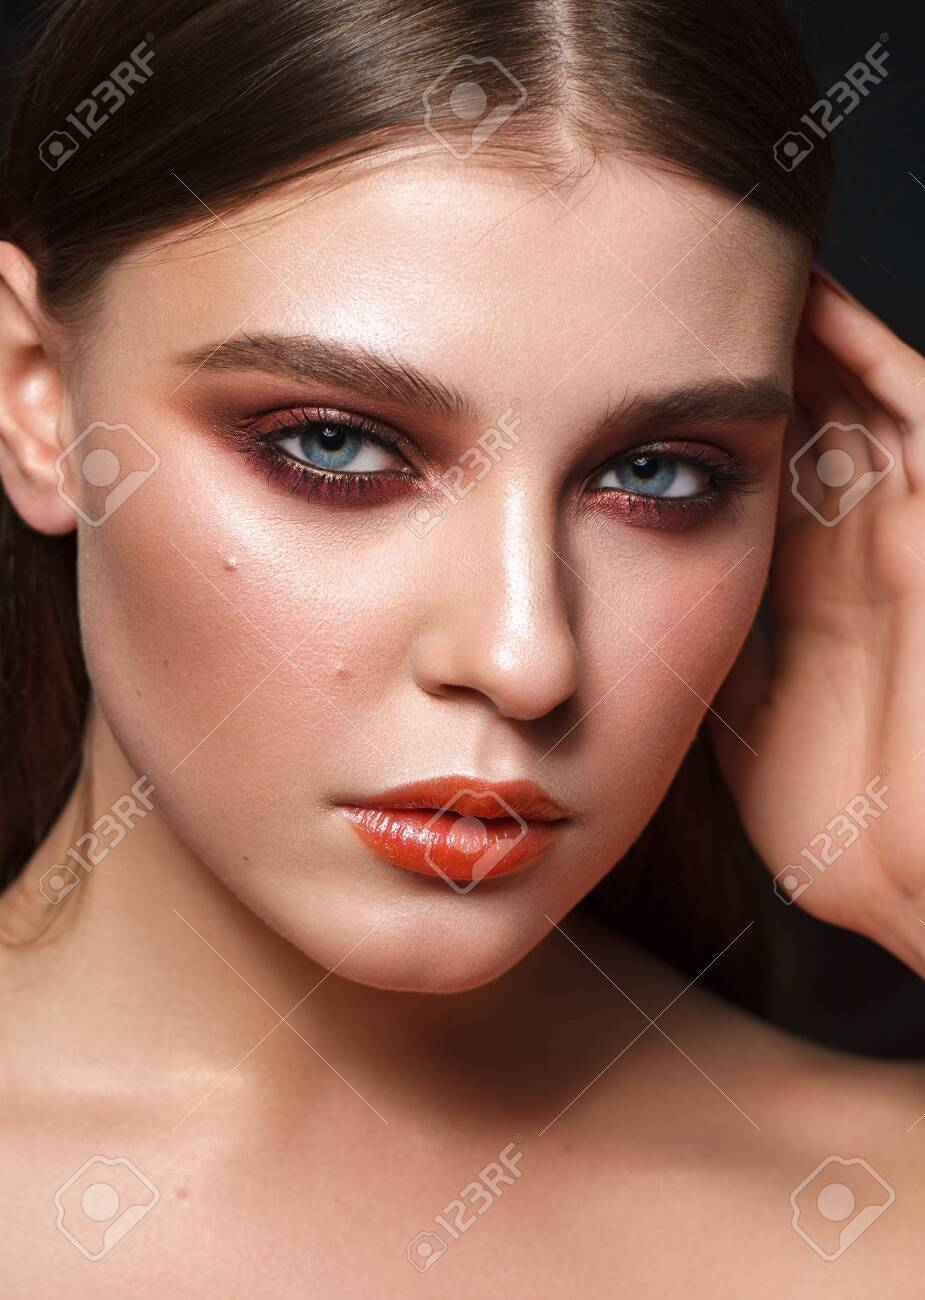 Perfect model with the professional colorful makeup, perfect skin and red smoky eyes. Closeup portrait. - 133209077